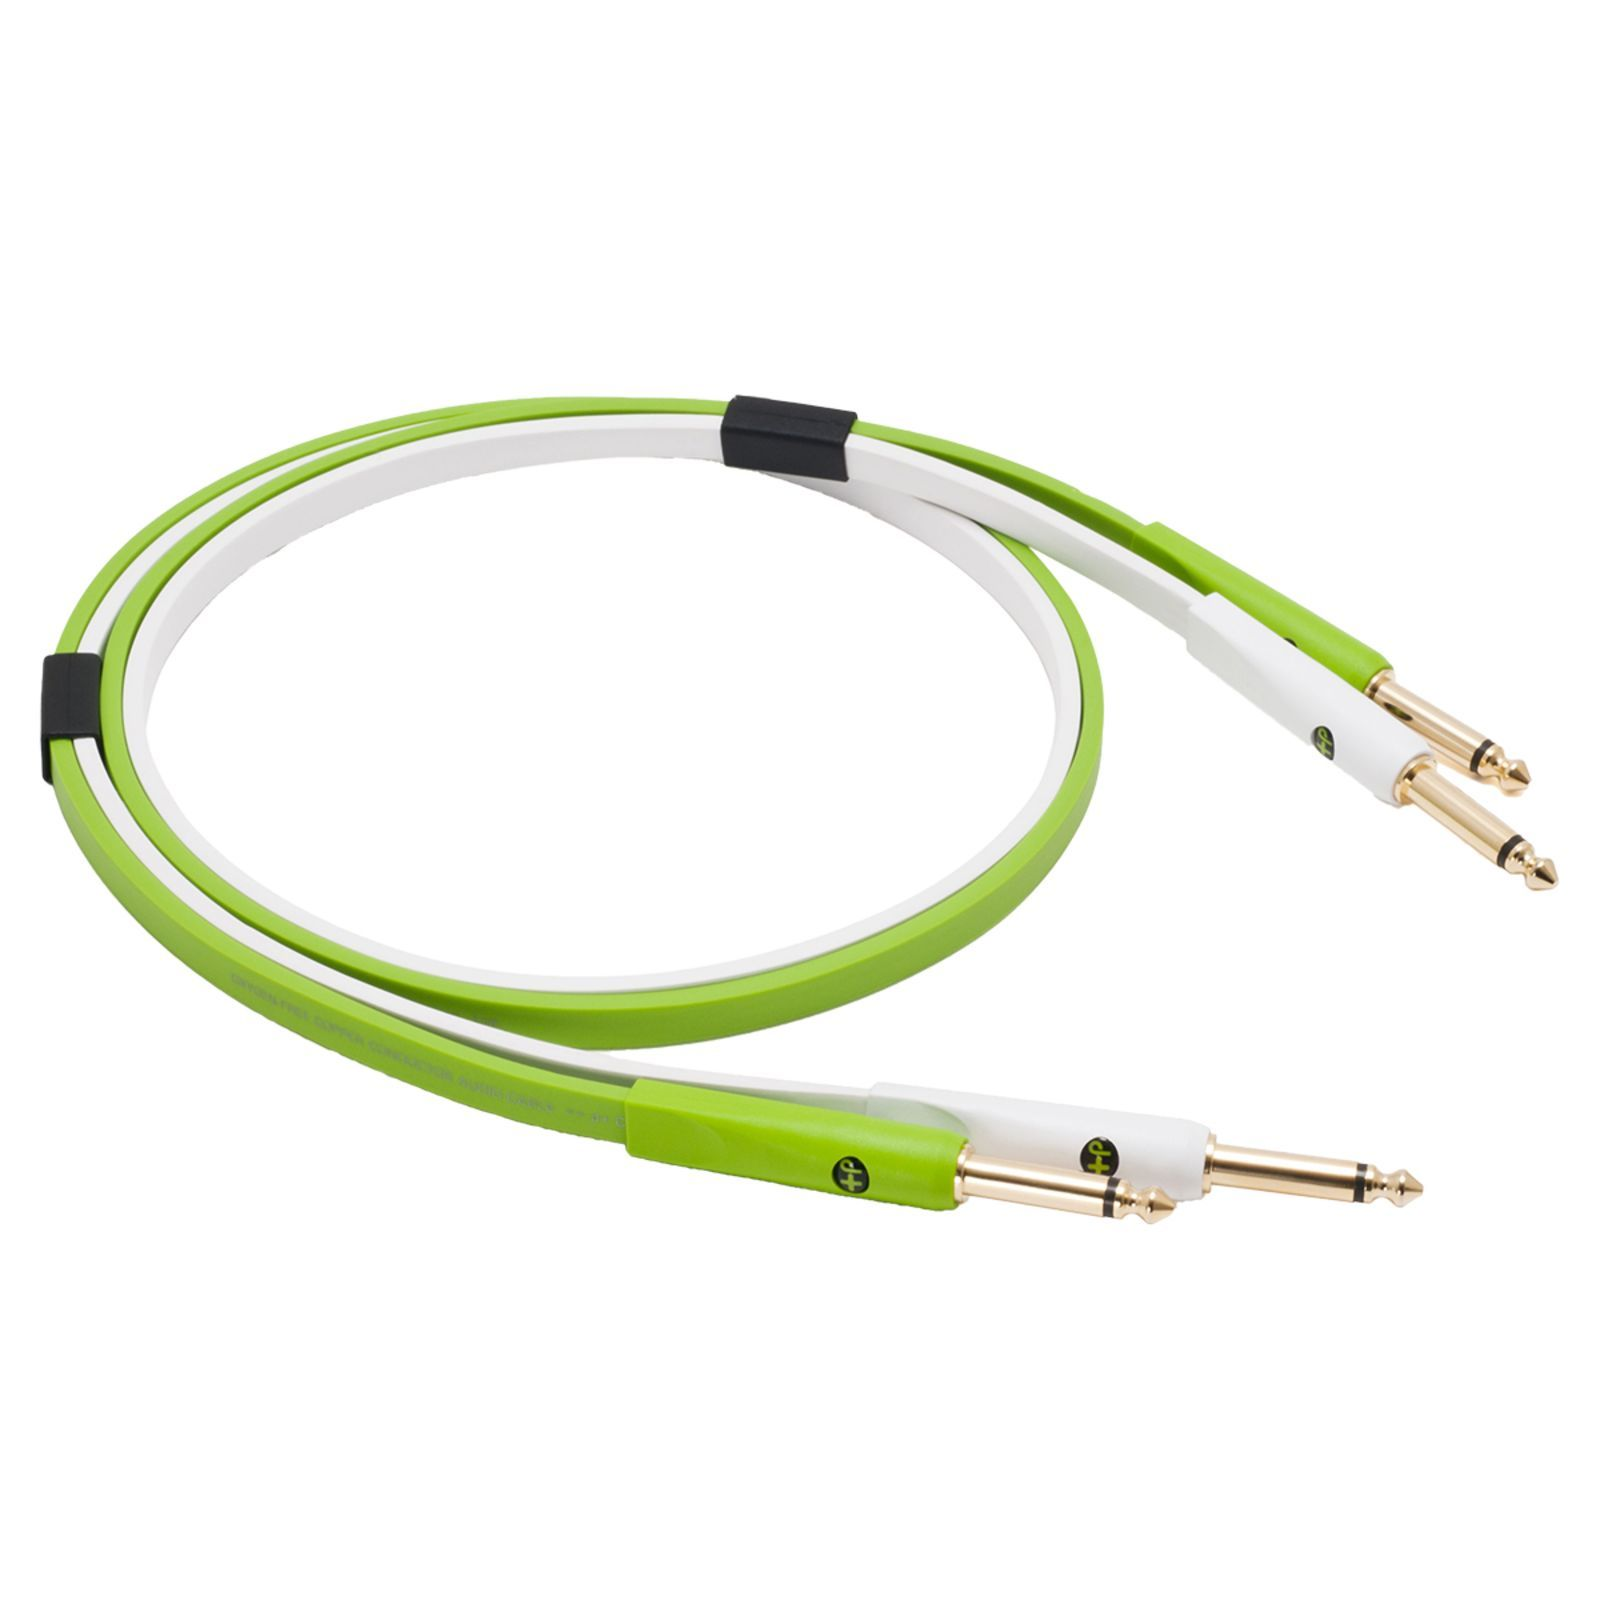 NEO by Oyaide d+ 2x6.3mm-Mono-Jack Cable Class B, 2.0m Length Immagine prodotto